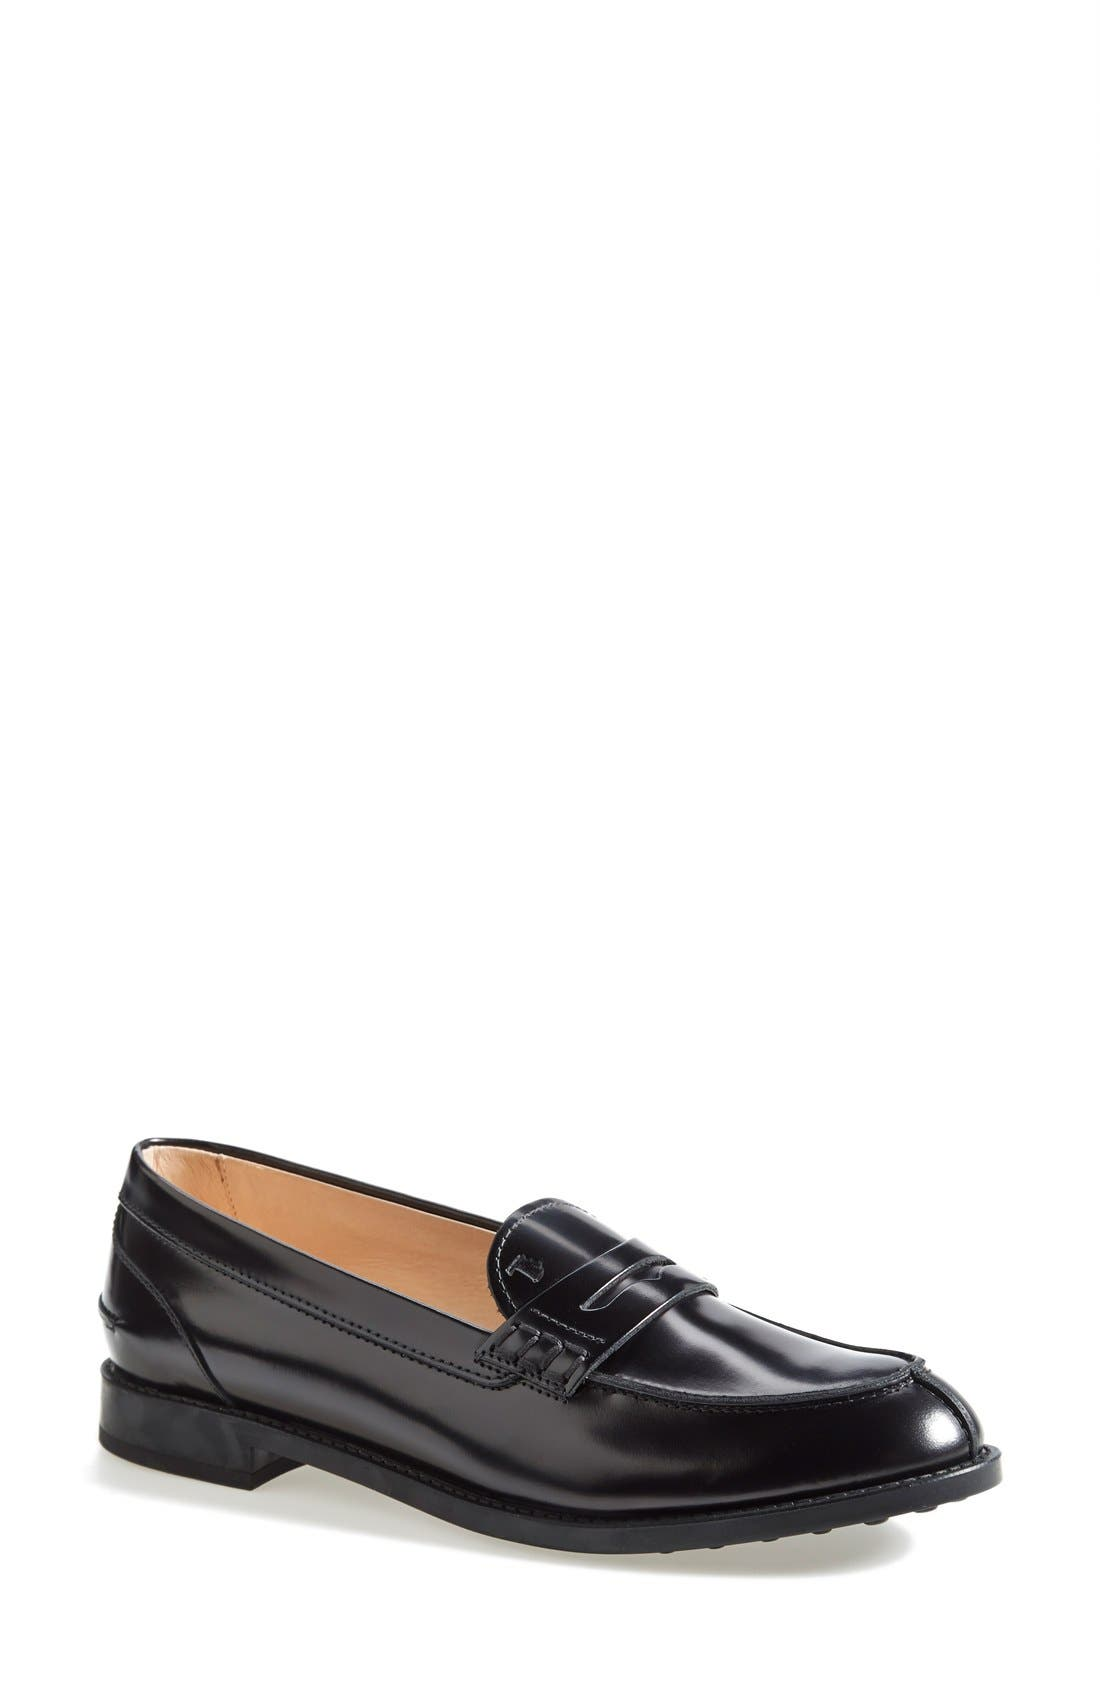 Main Image - Tod's 'Classic' Leather Loafer (Women)